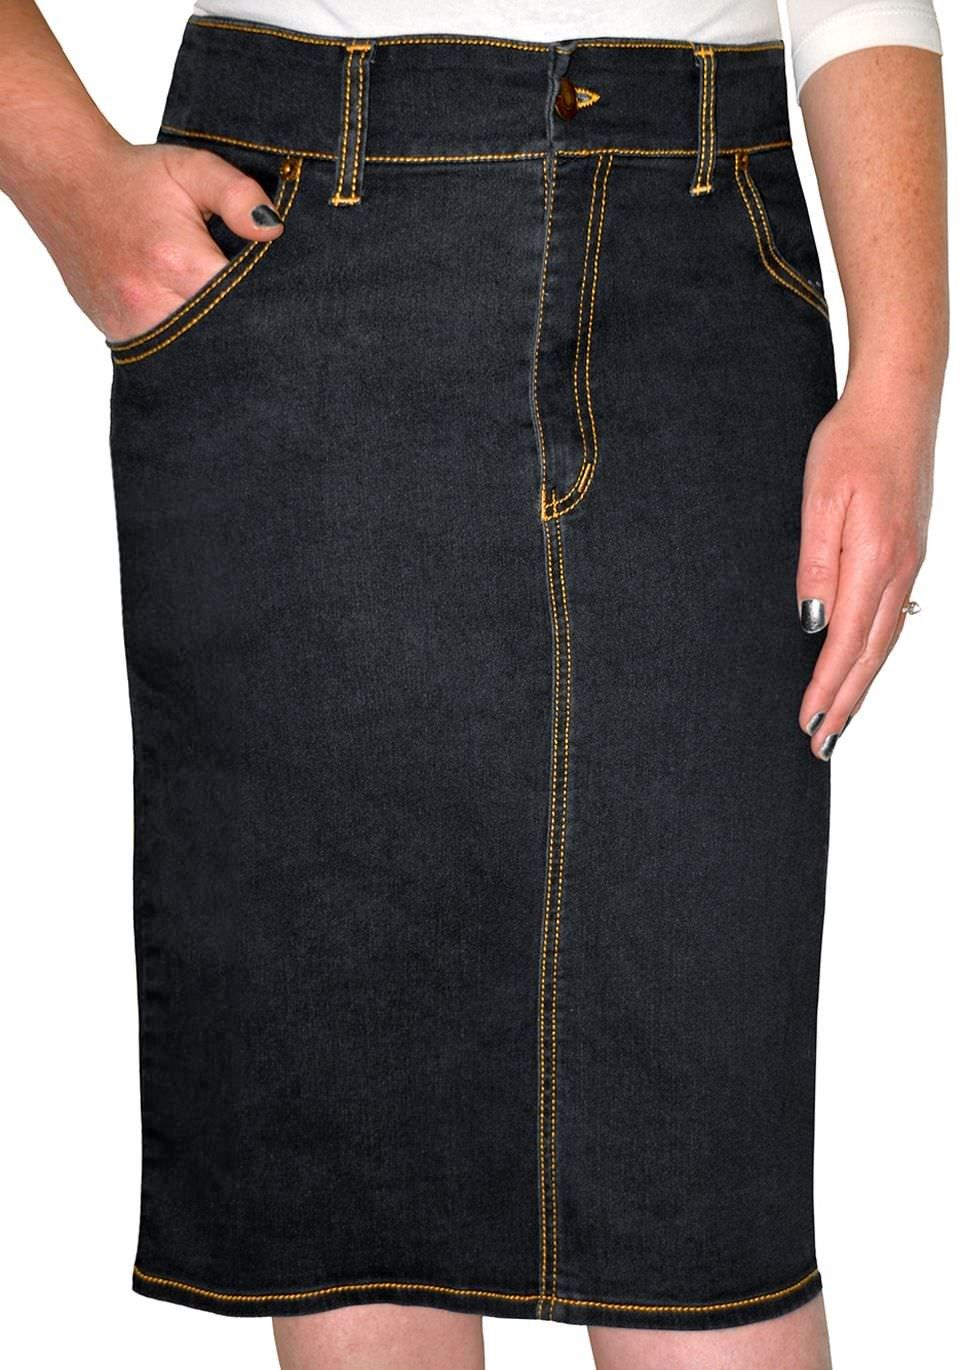 fcf8d4821f Your favourite denim skirt just got better! Two front and two back pockets  with no back slit, straight cut, fitted design. #modestskirts #modest